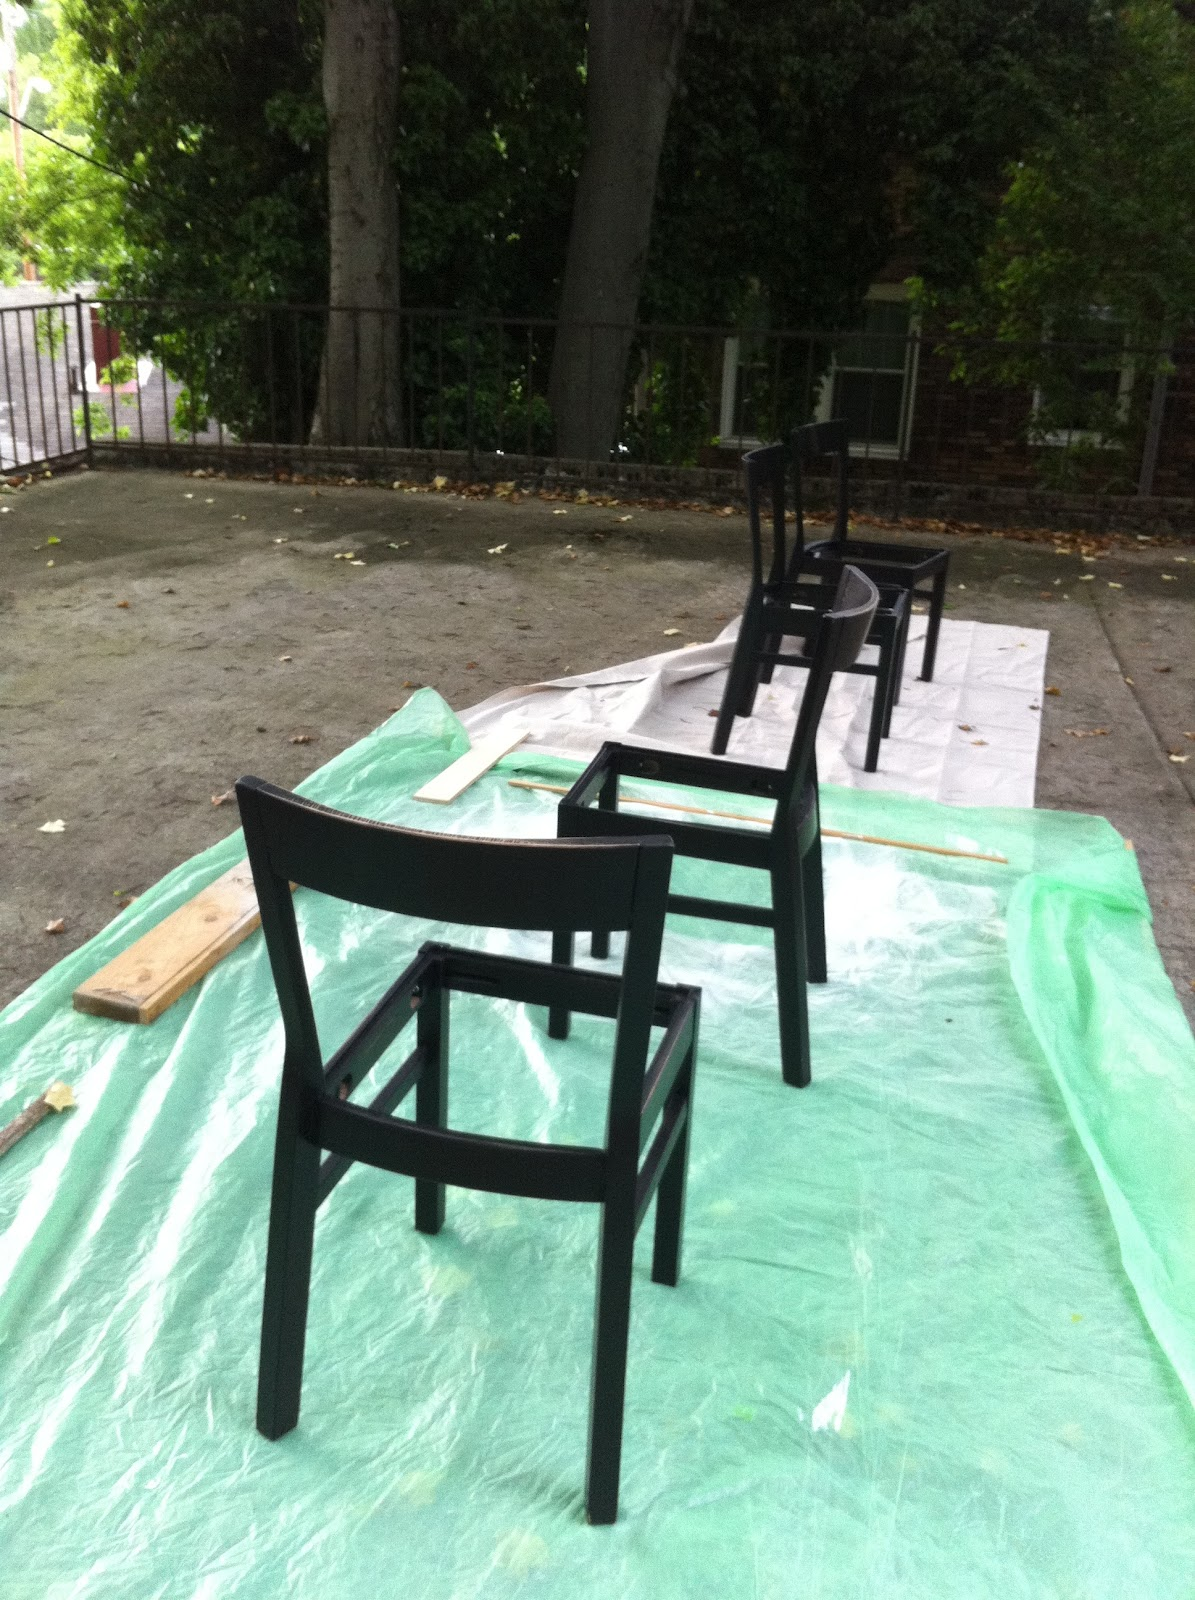 Sale Da Pranzo Moderne Ikea dwell and tell: dining room chairs repainted! weekend project